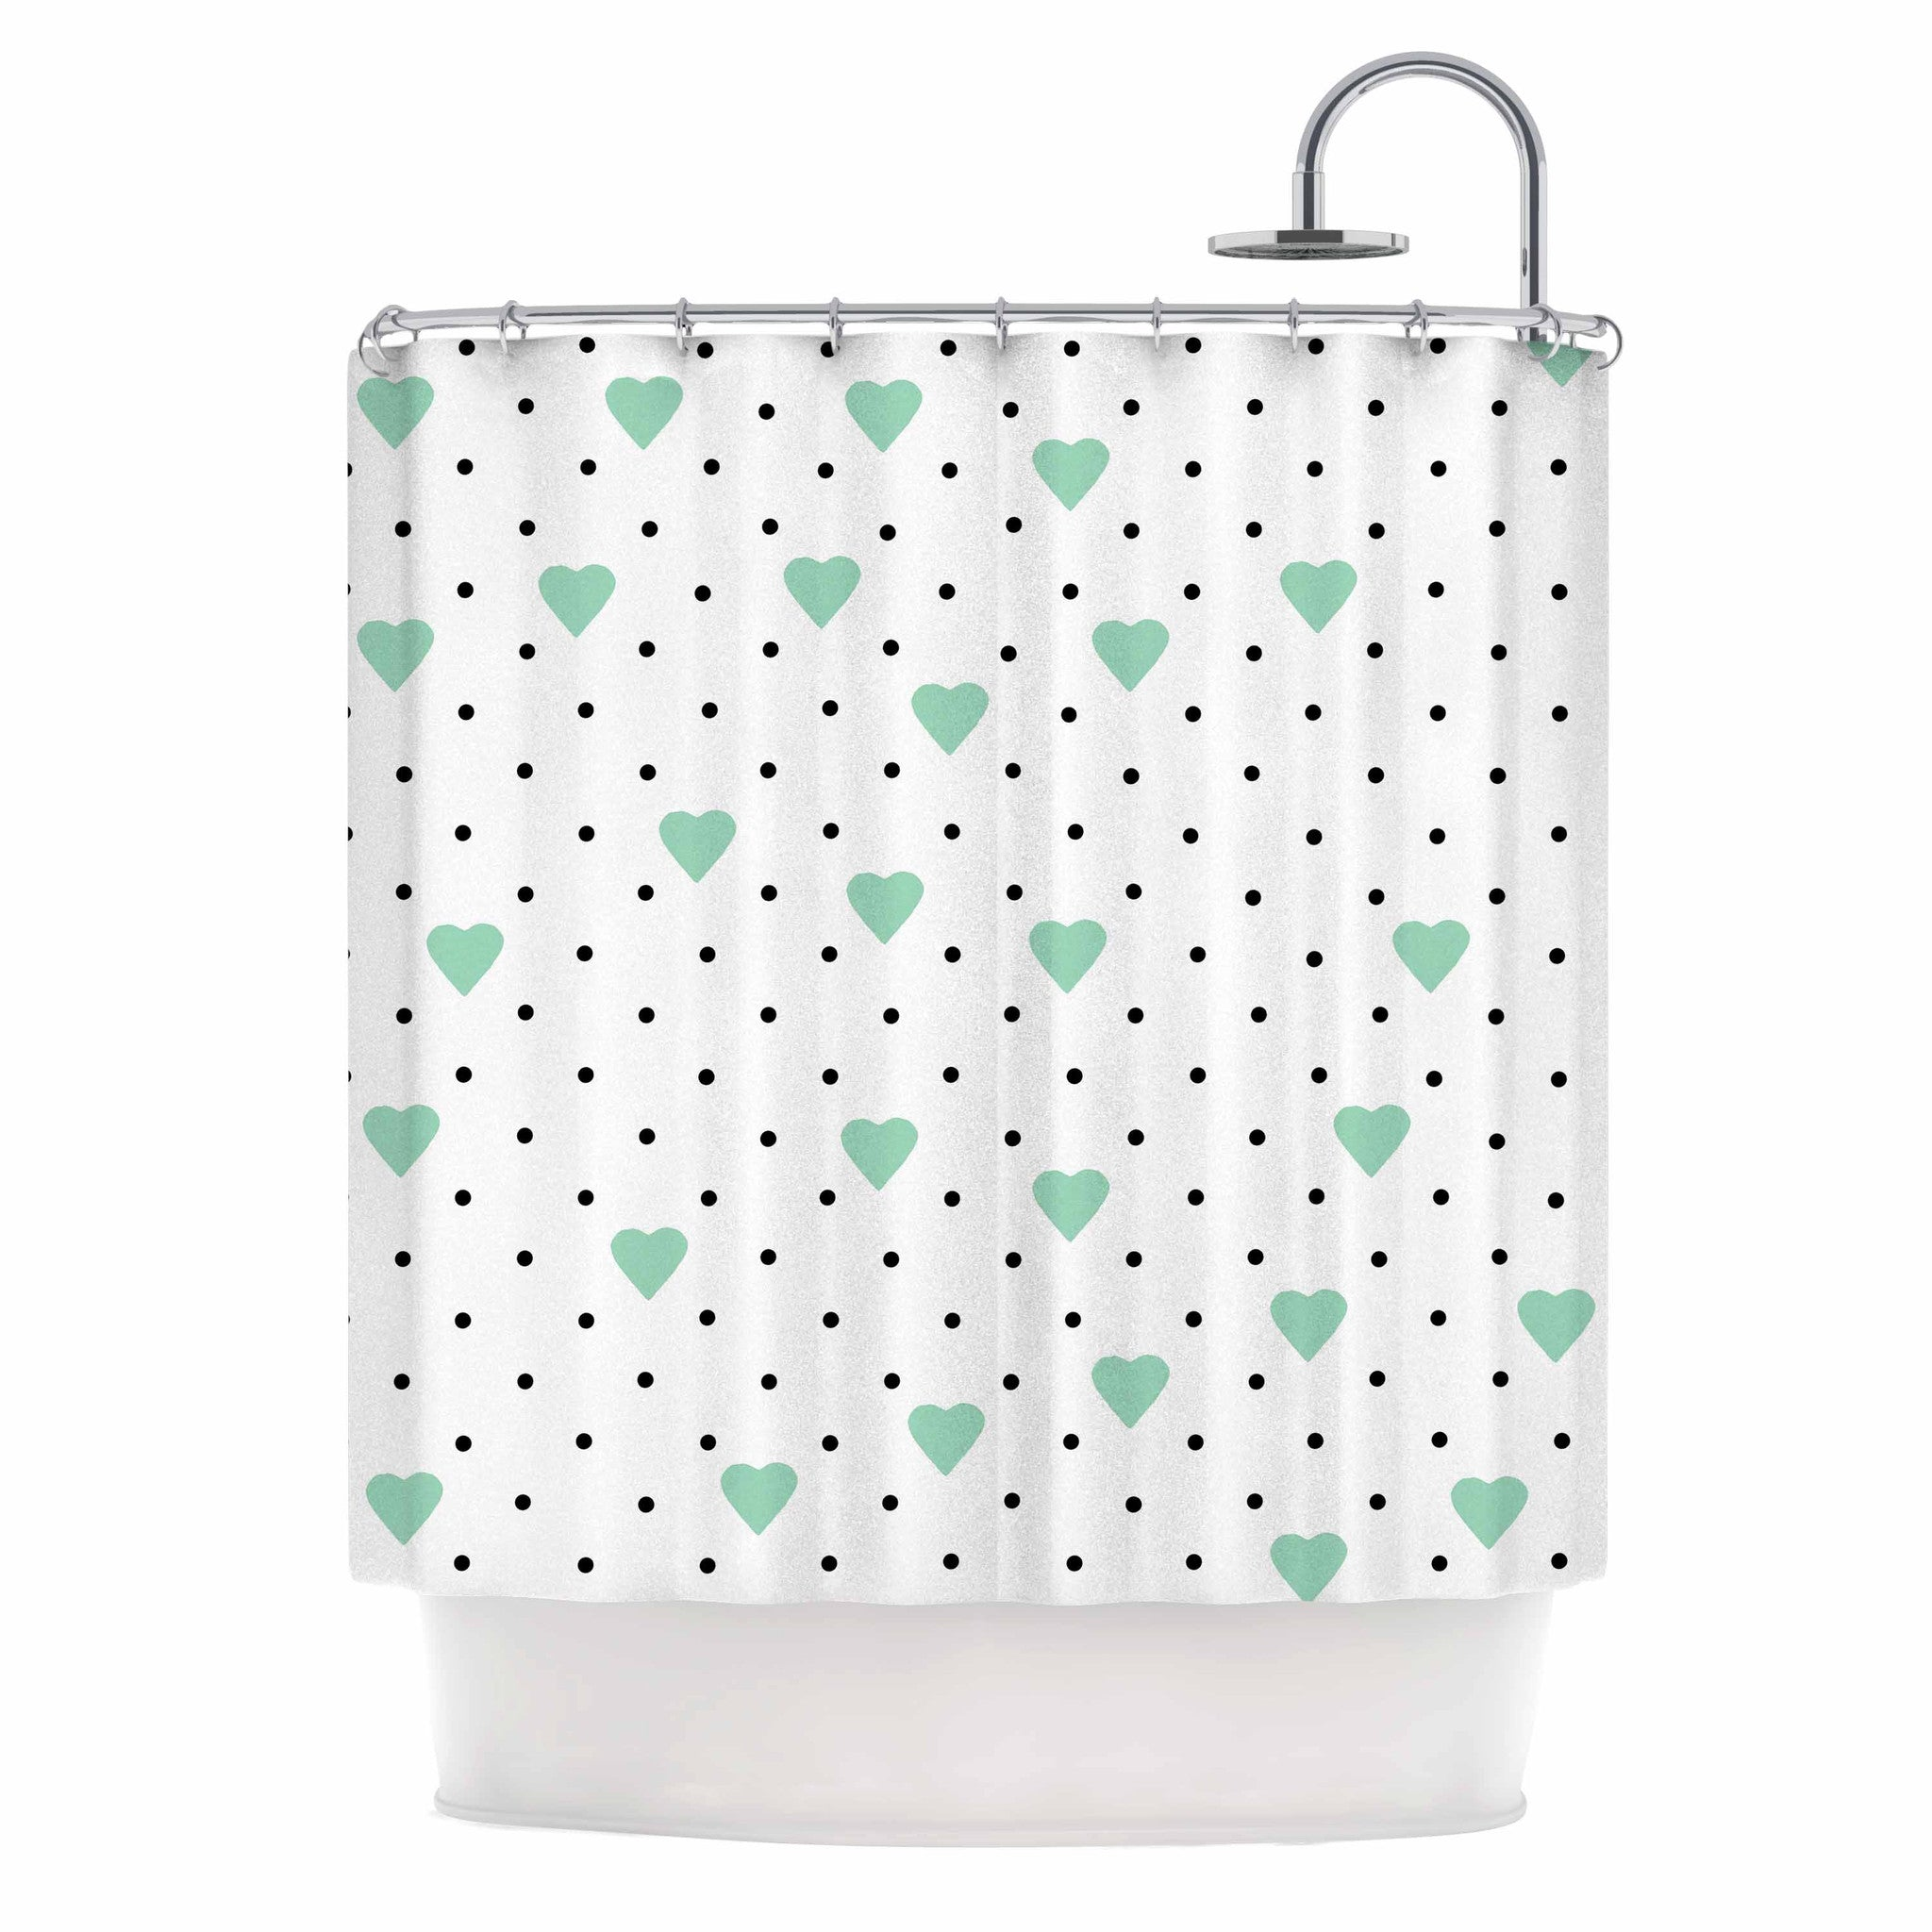 Coral and mint shower curtain - Project M Pin Point Polka Dot Mint Green White Shower Curtain Mint Green Shower Curtain